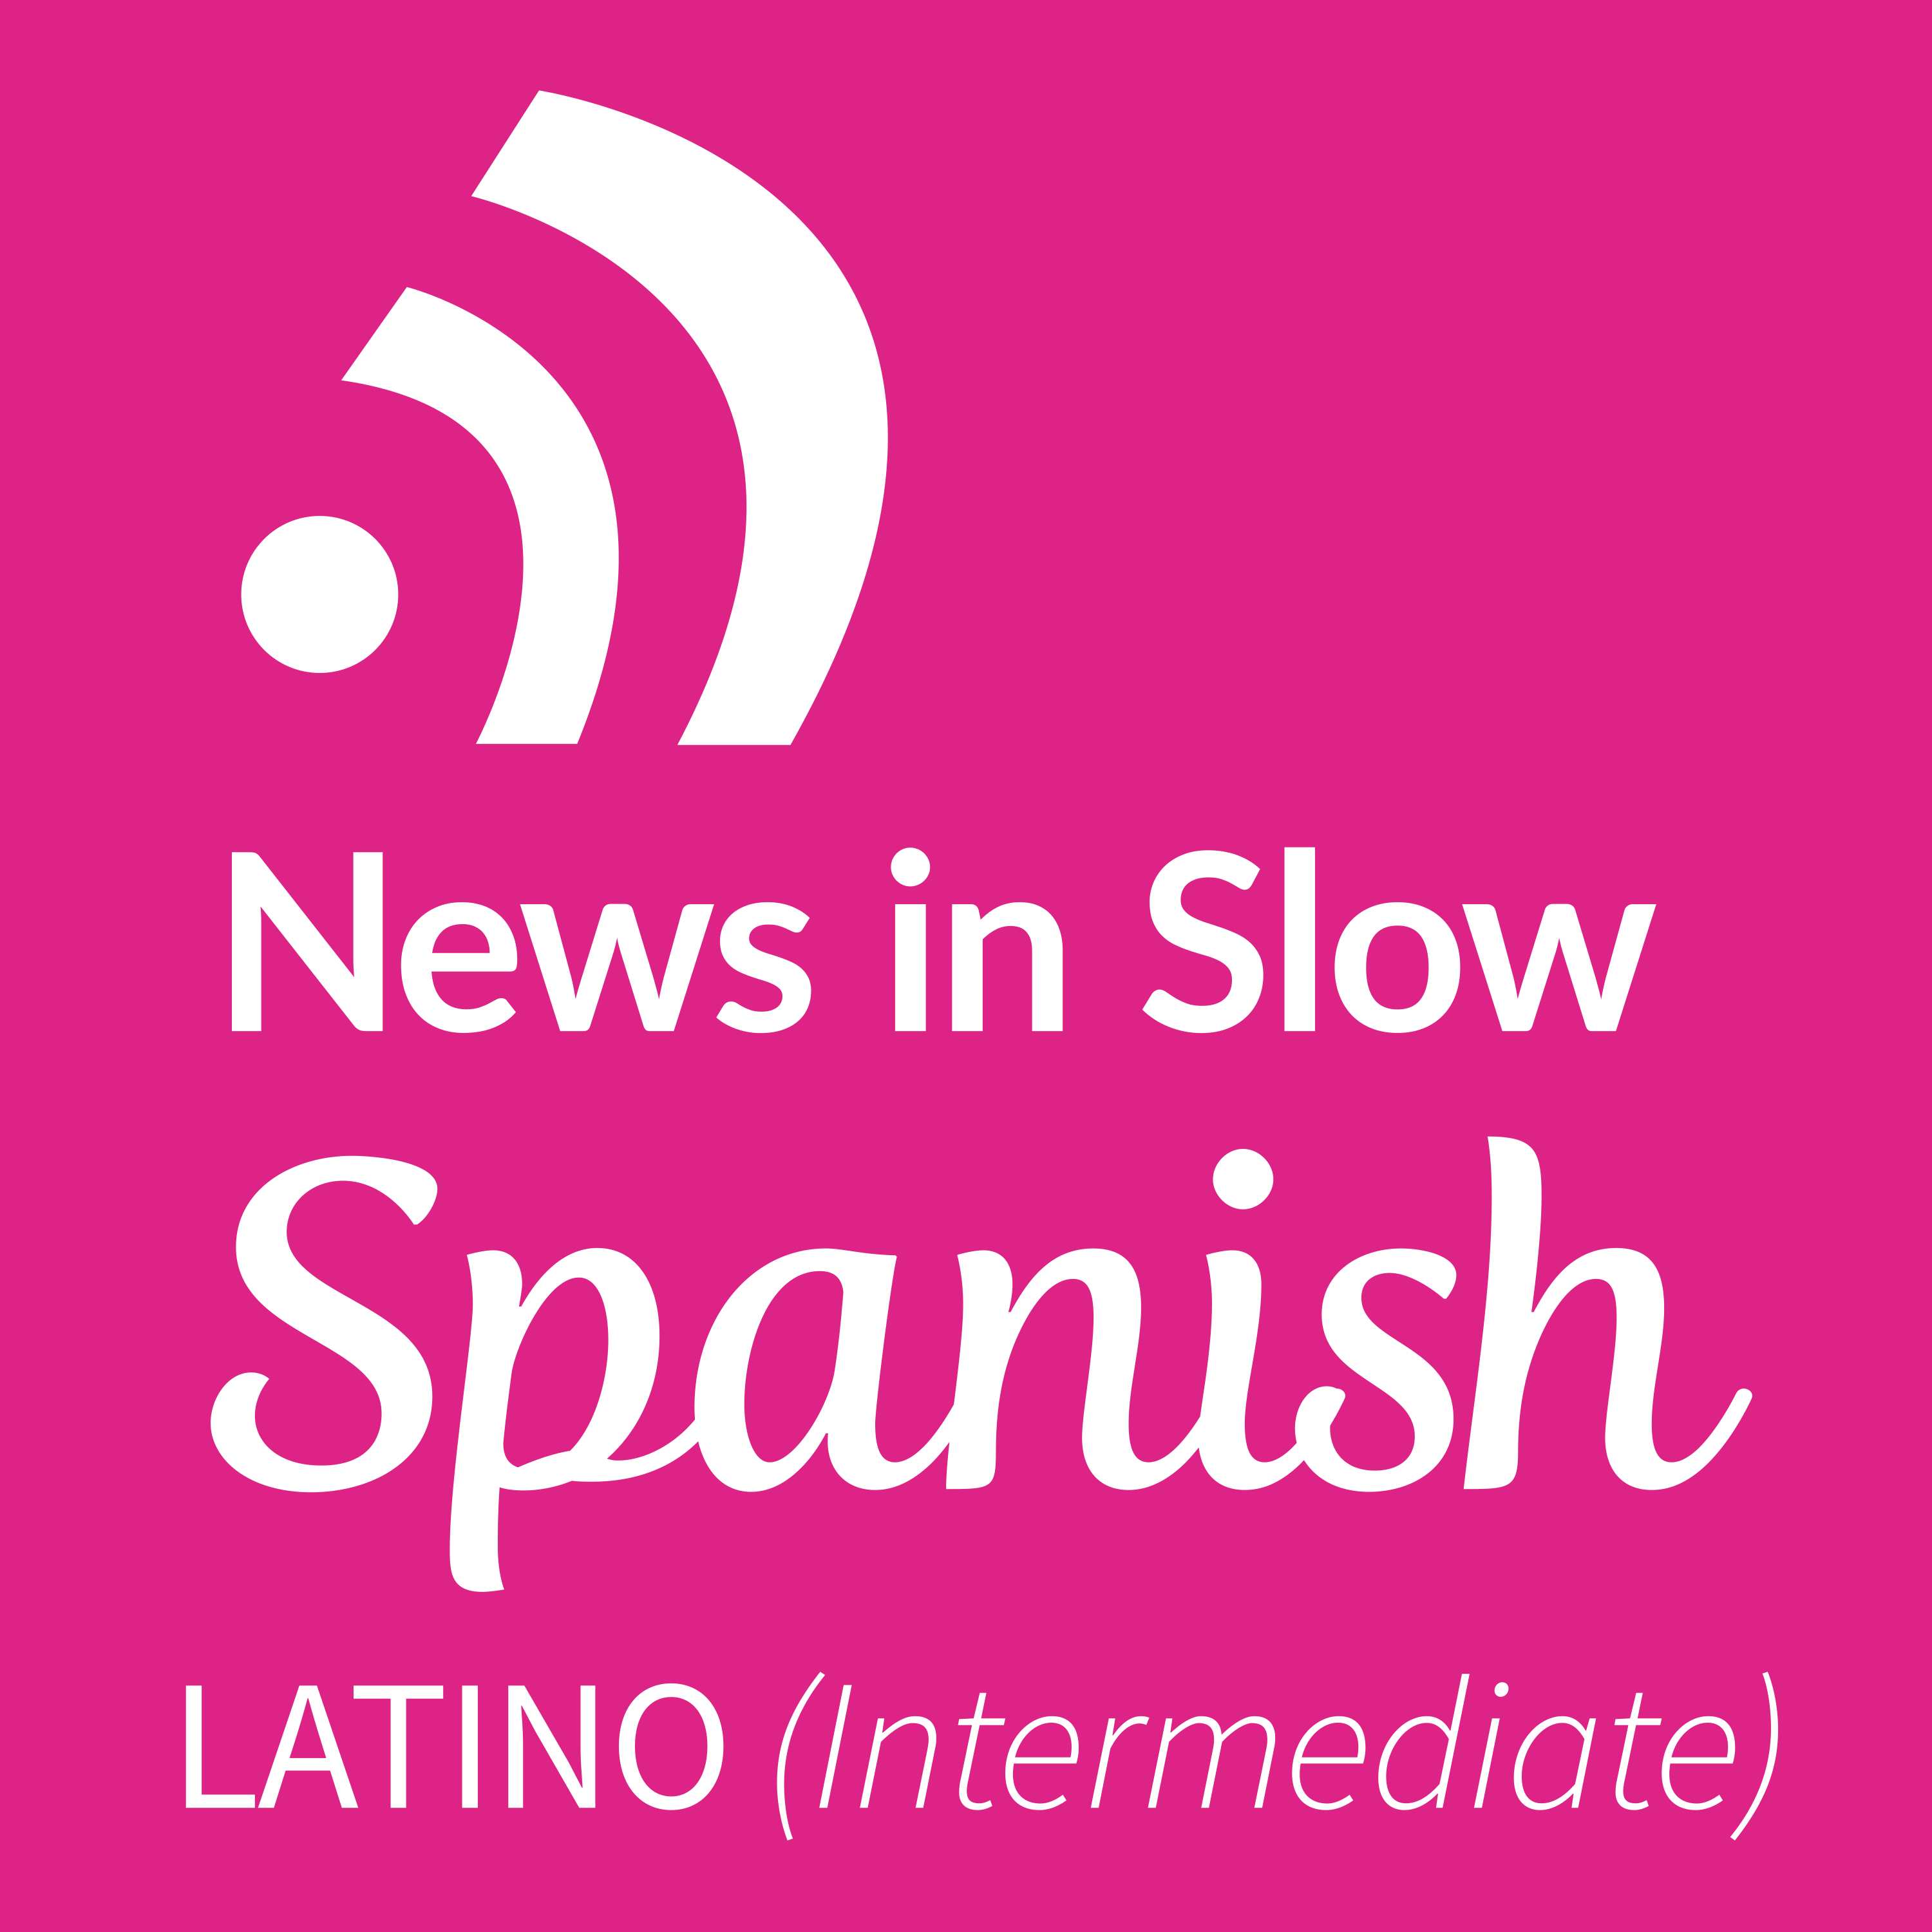 News in Slow Spanish Latino - # 144- Spanish grammar, news and expressions